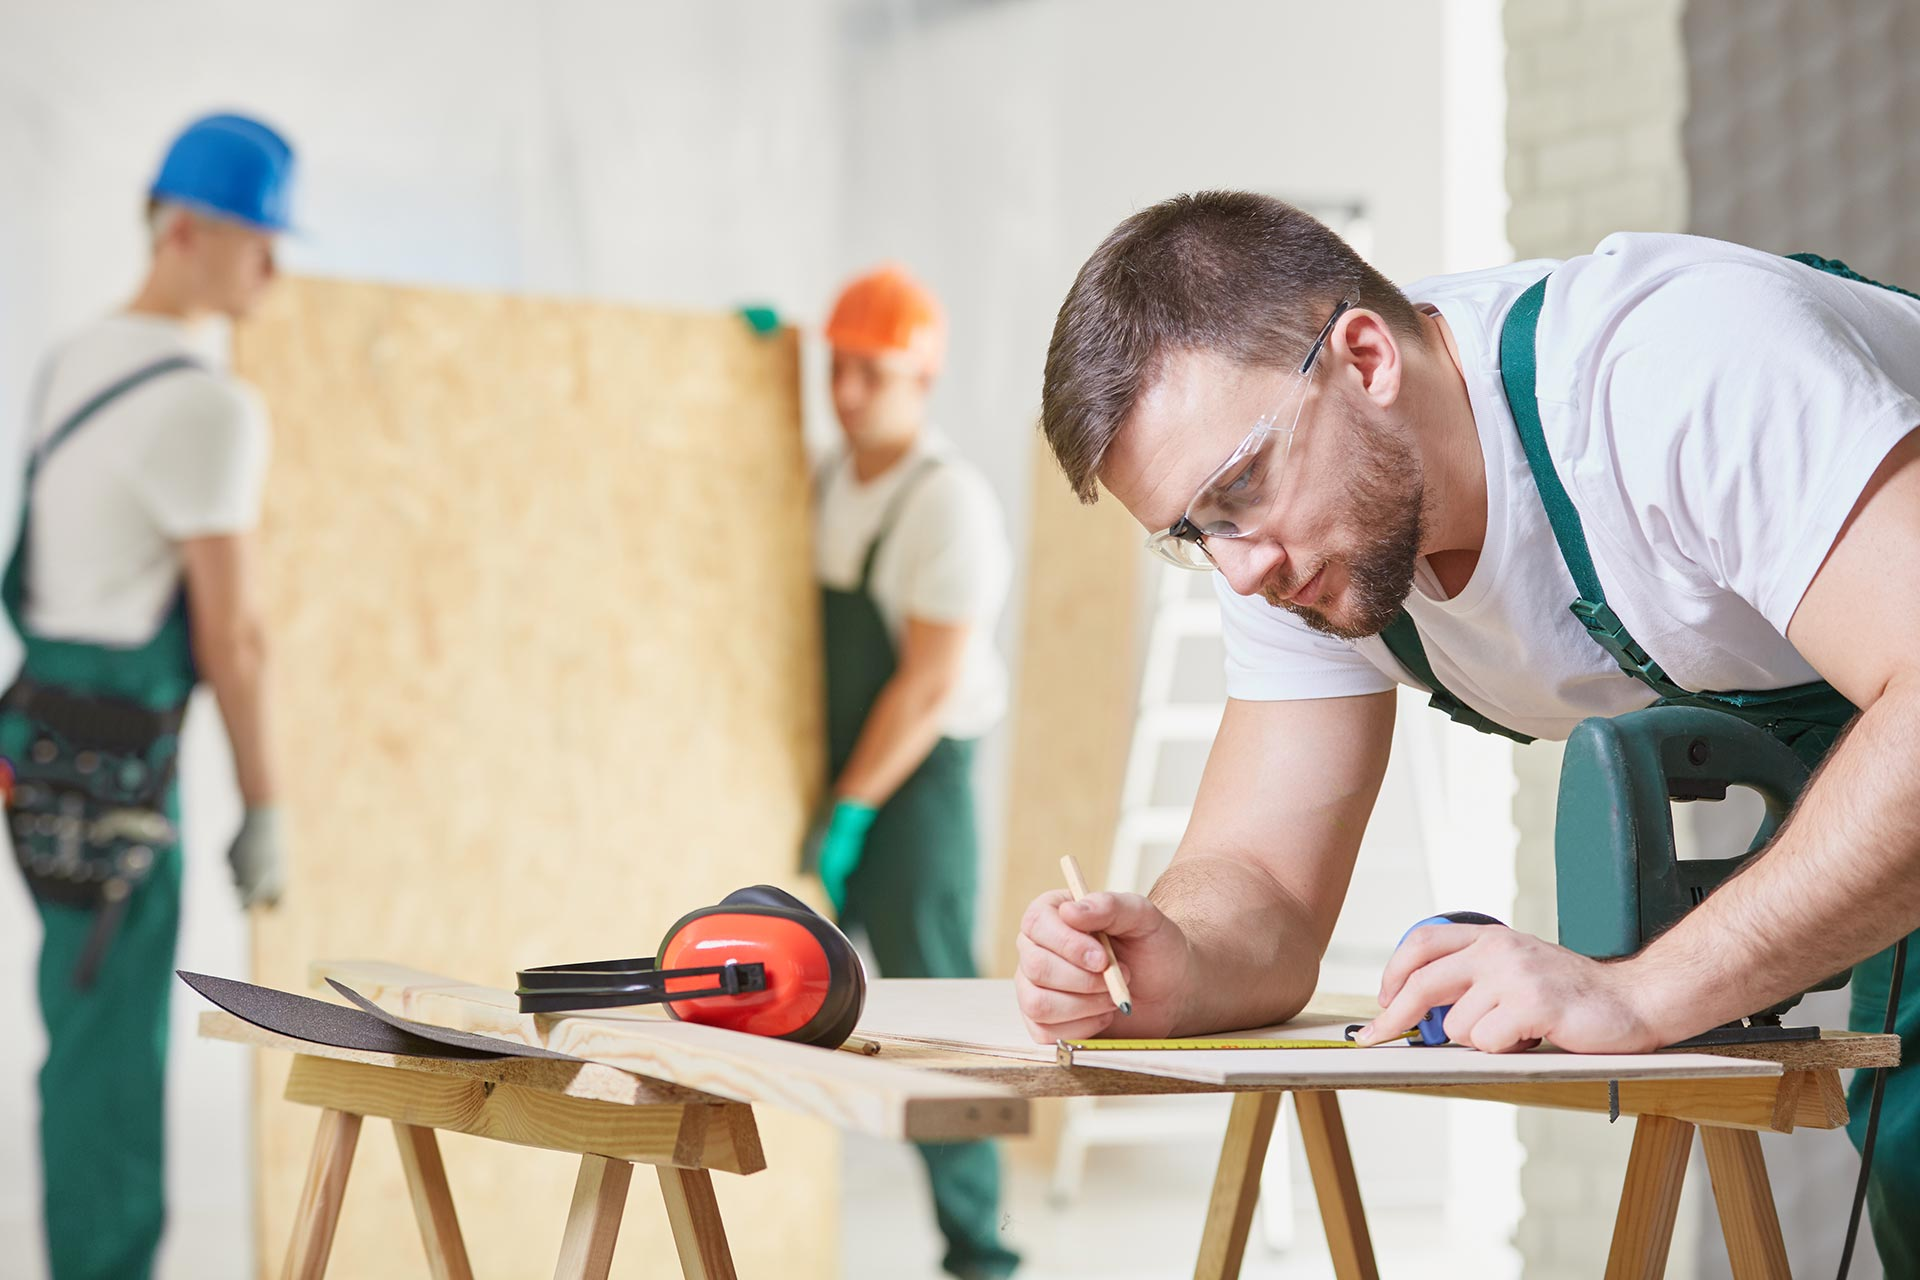 Commercial Property Maintenance and Facilities Maintenance Services in Dandenong.